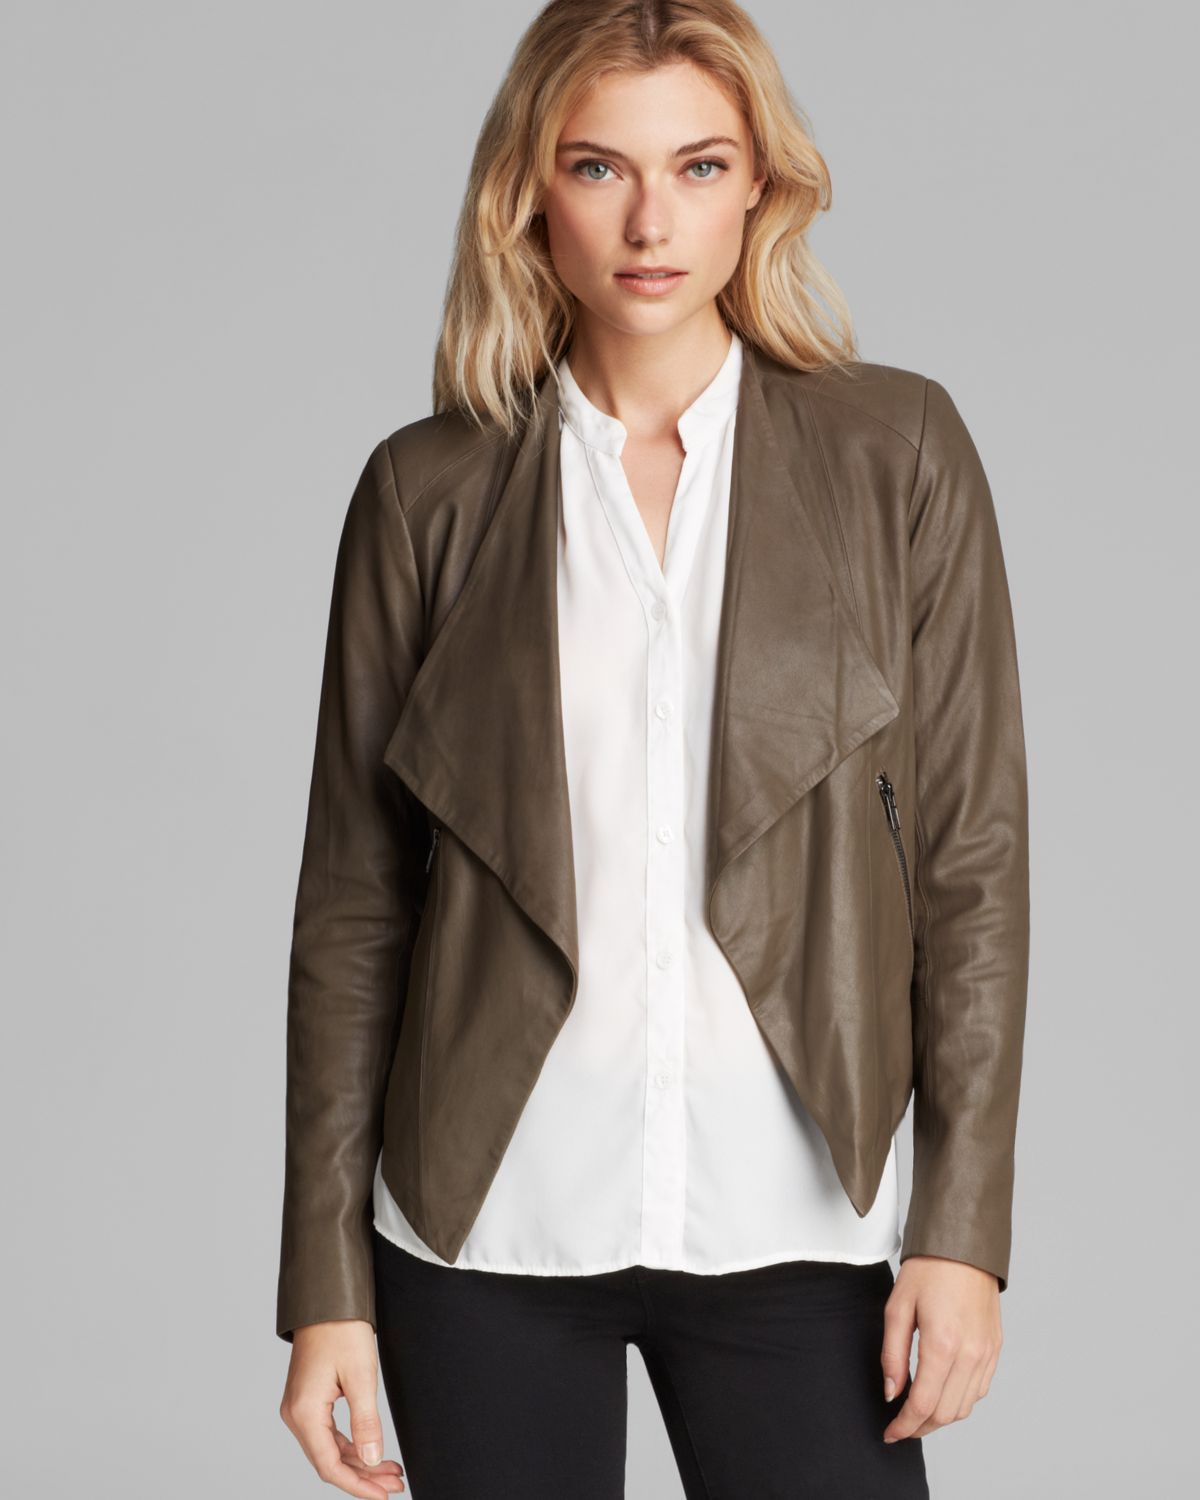 Bb dakota Harper Soft Leather Jacket in Brown | Lyst